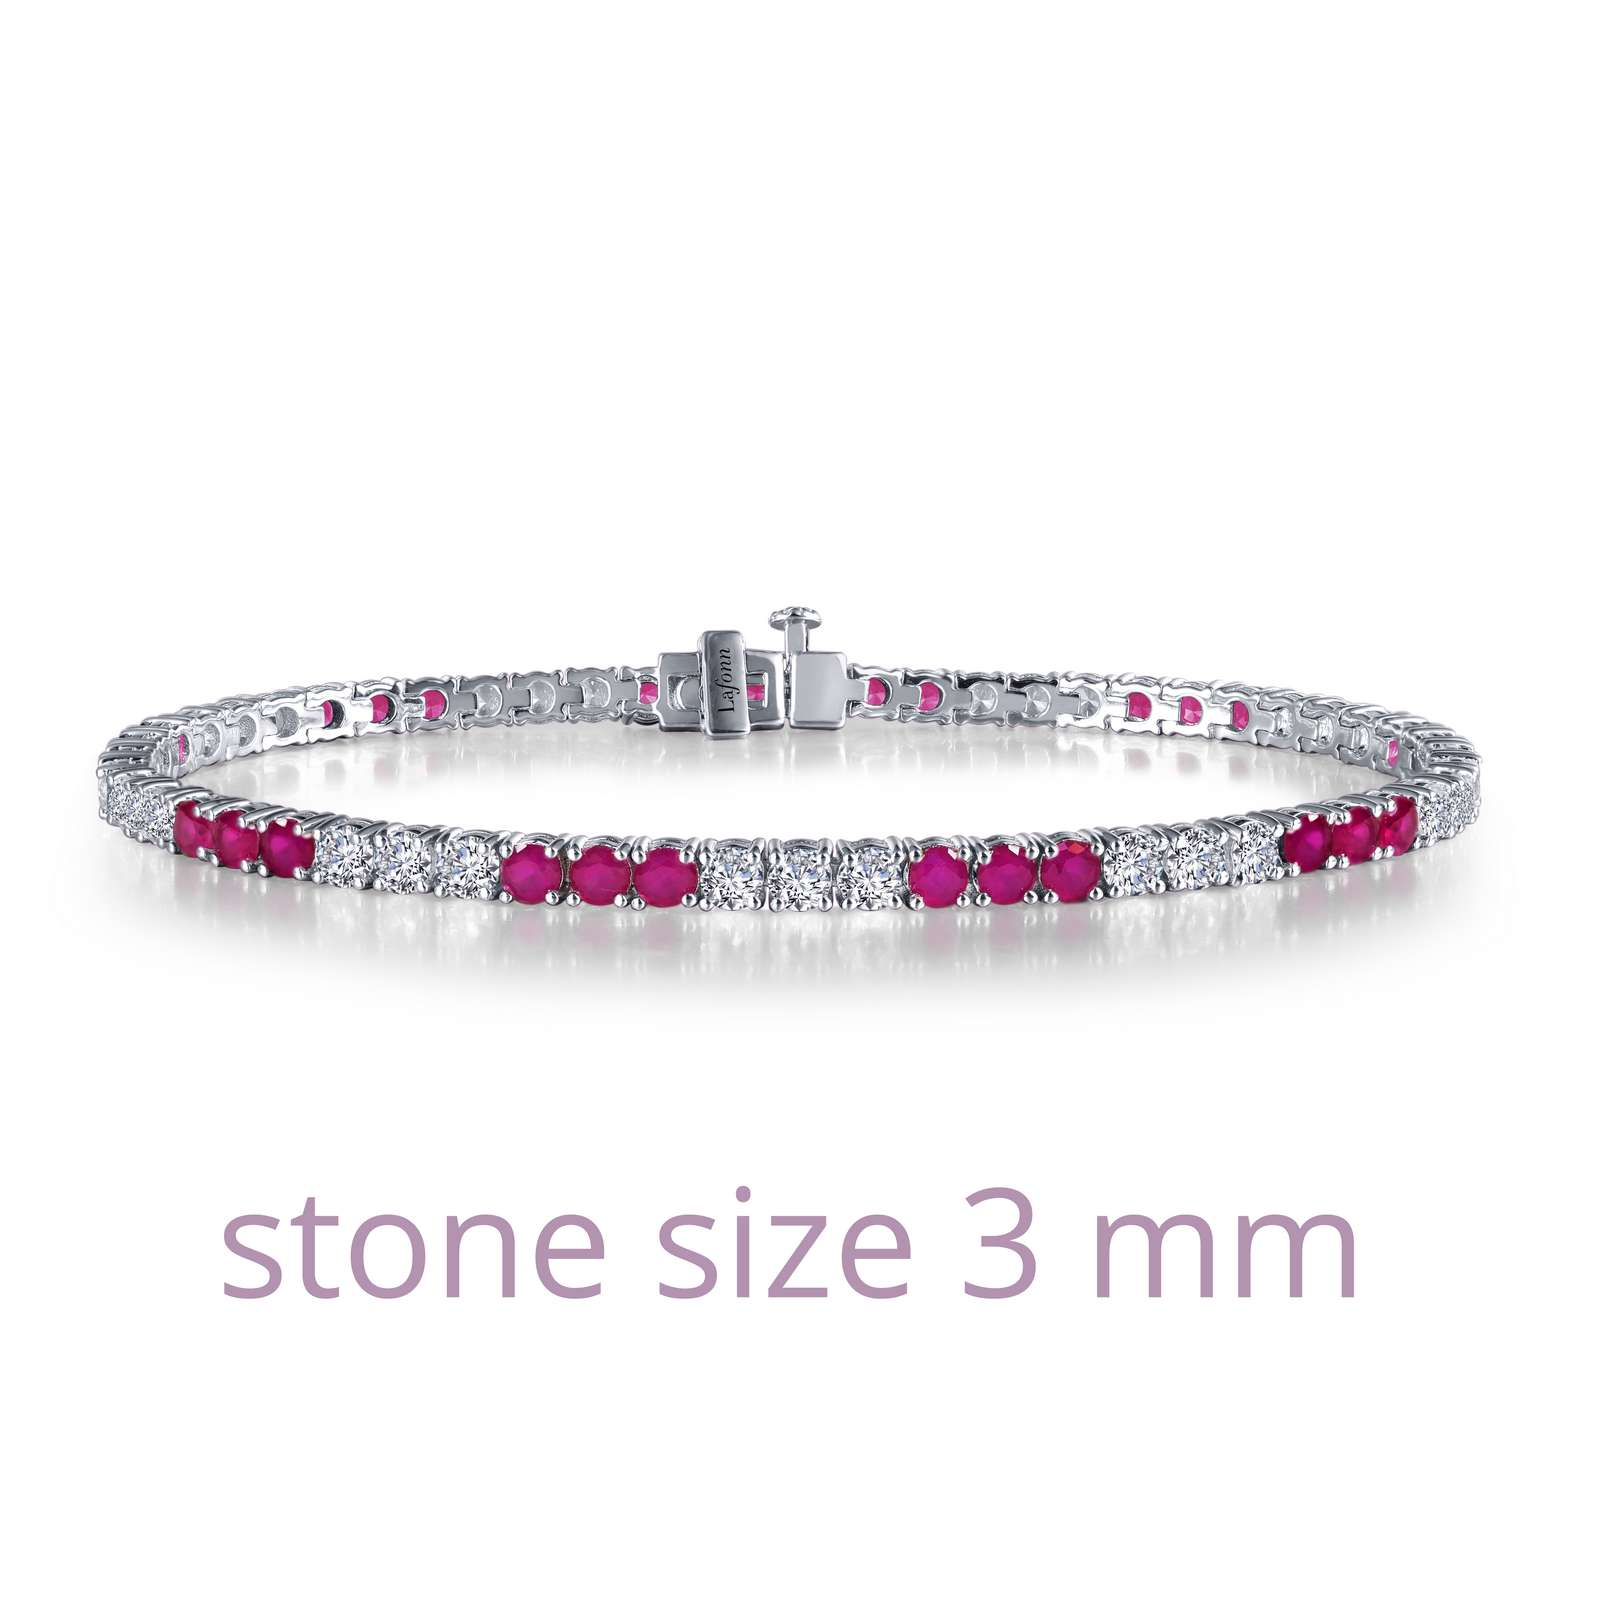 Timeless classics for everyday wear. This sparkly tennis bracelet is set with Lafonn's signature Lassaire simulated diamonds and lab-grown rubies in sterling silver bonded with platinum. .